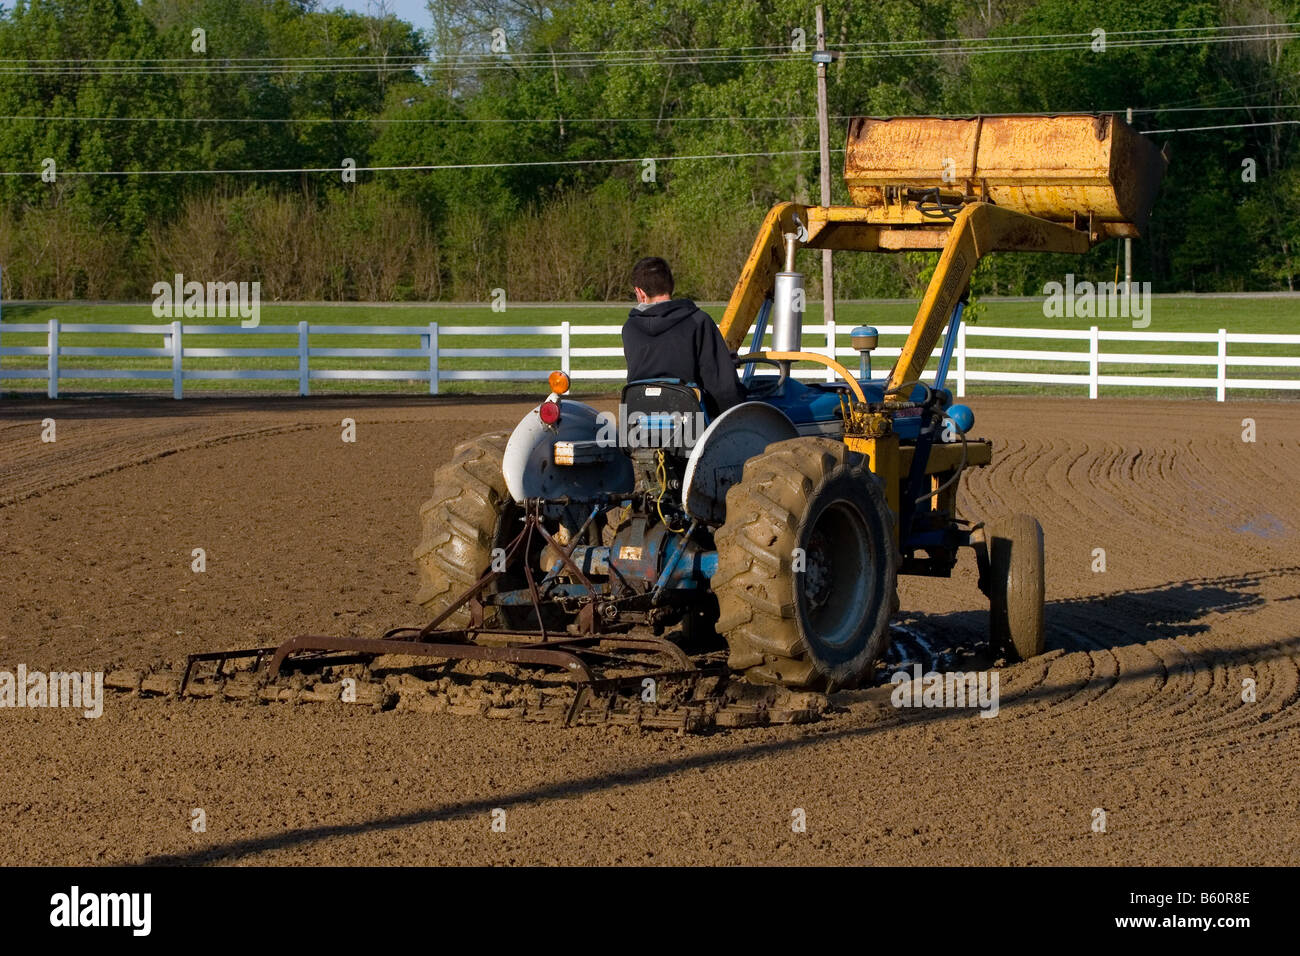 Payloader Stock Photos & Payloader Stock Images - Alamy